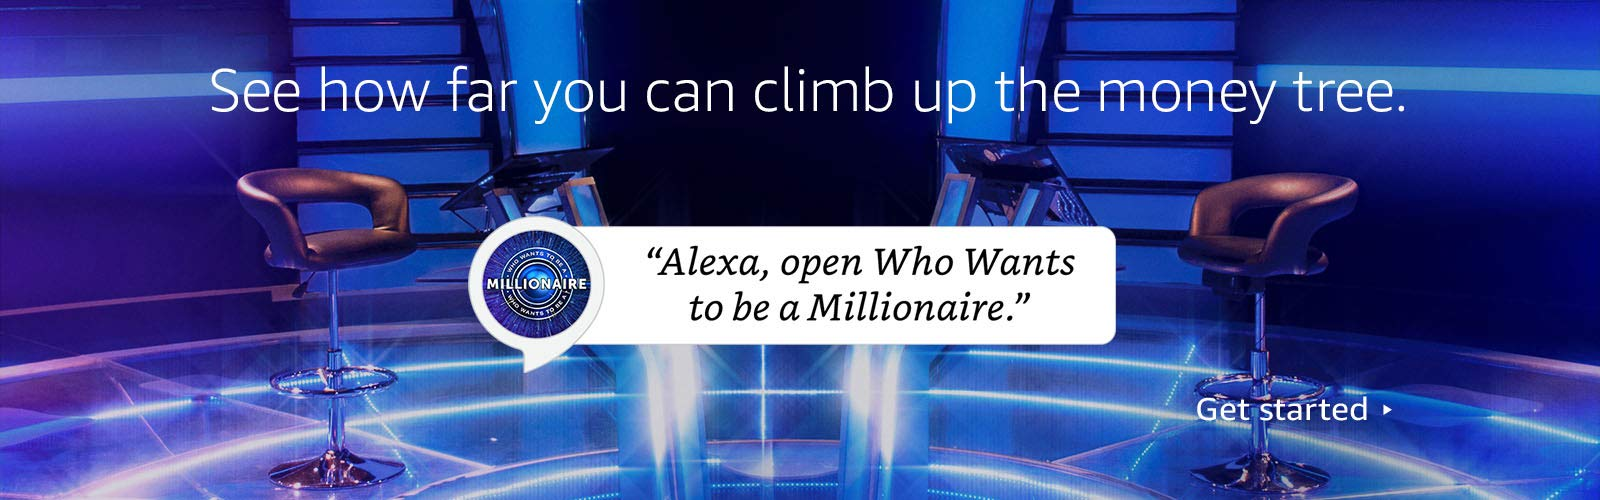 """Alexa, open Who Wants to be a Millionaire."""